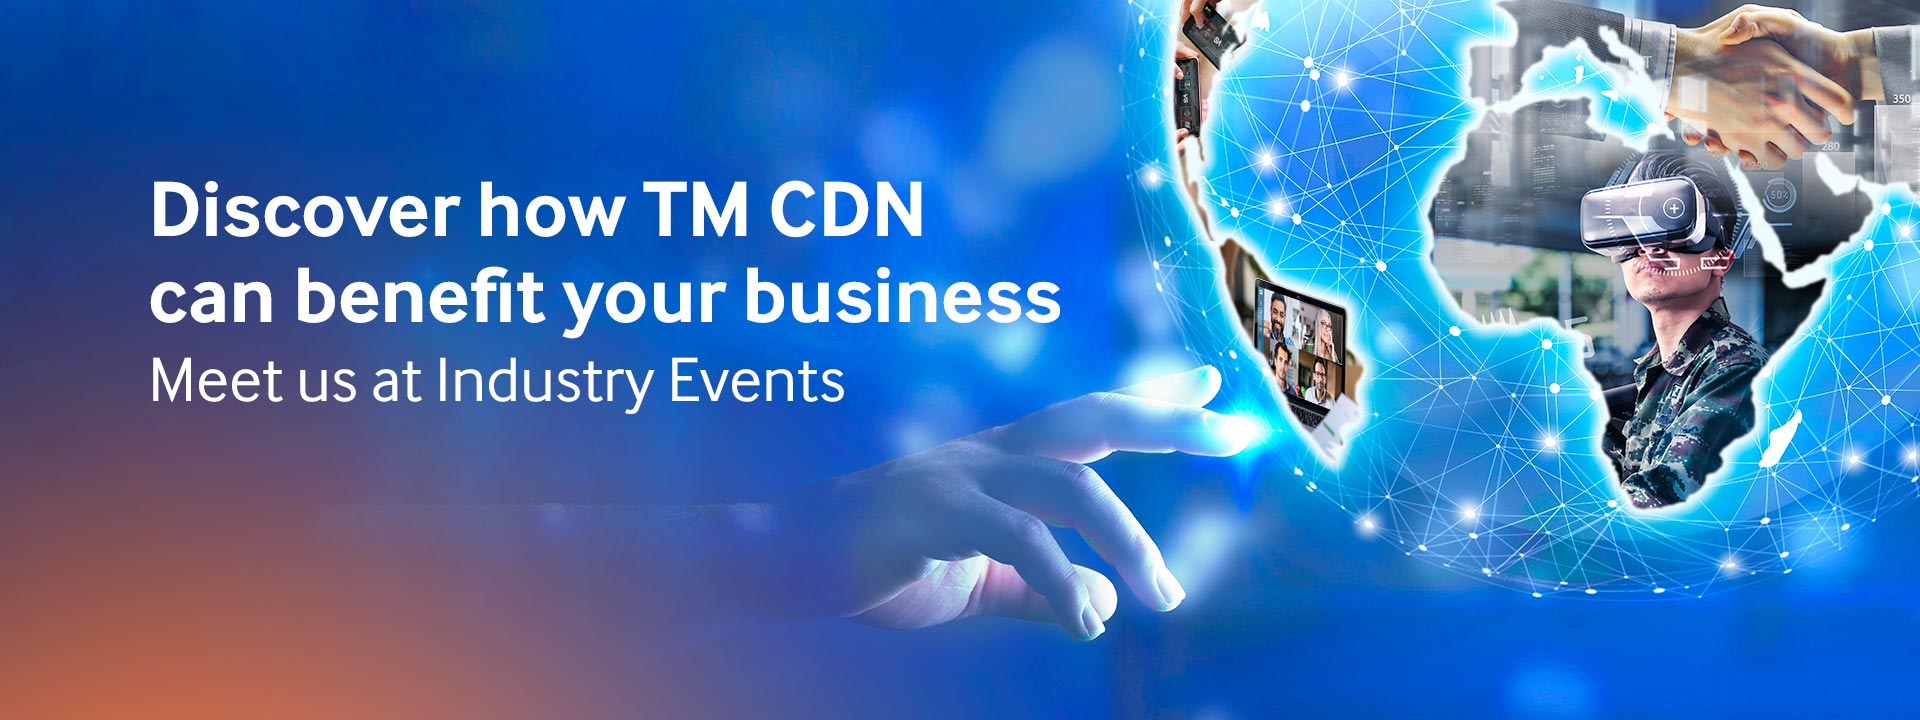 Discover how TM CDN can benefit your business